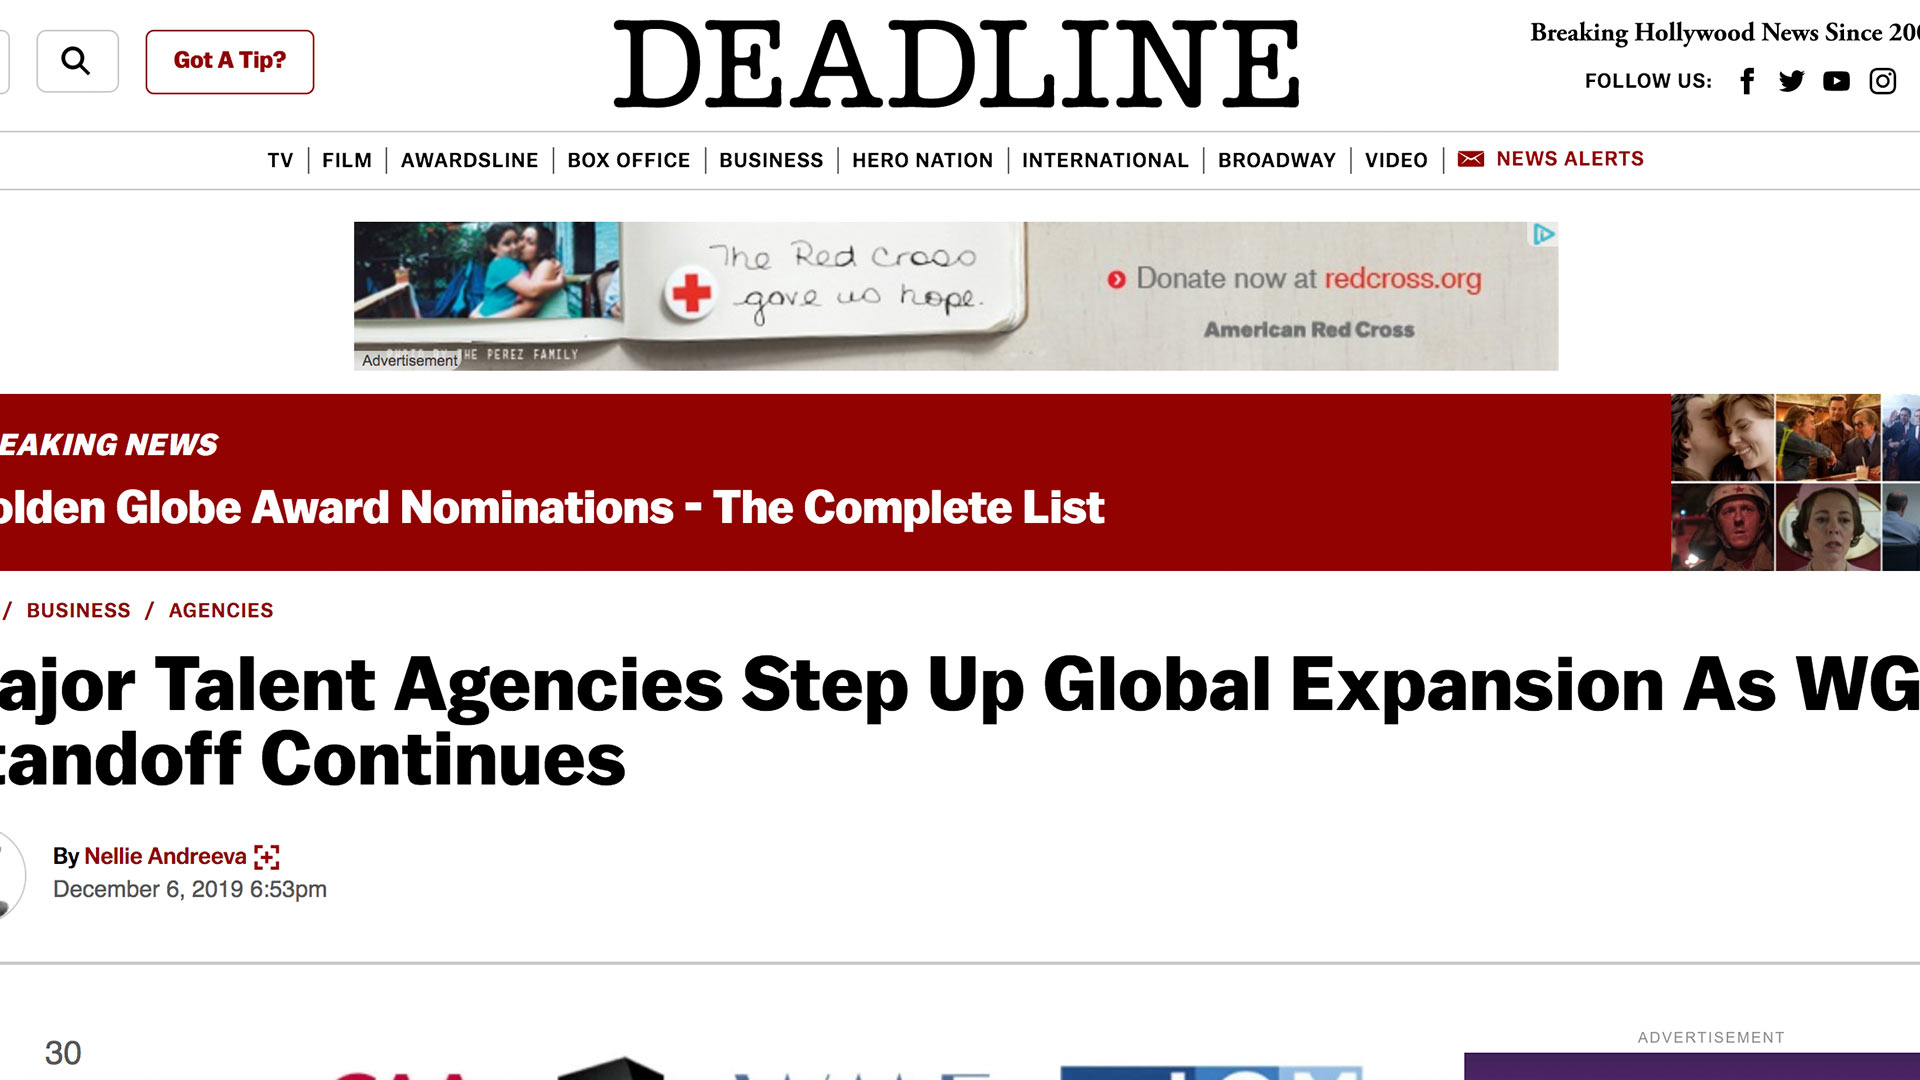 Fairness Rocks News Major Talent Agencies Step Up Global Expansion As WGA Standoff Continues